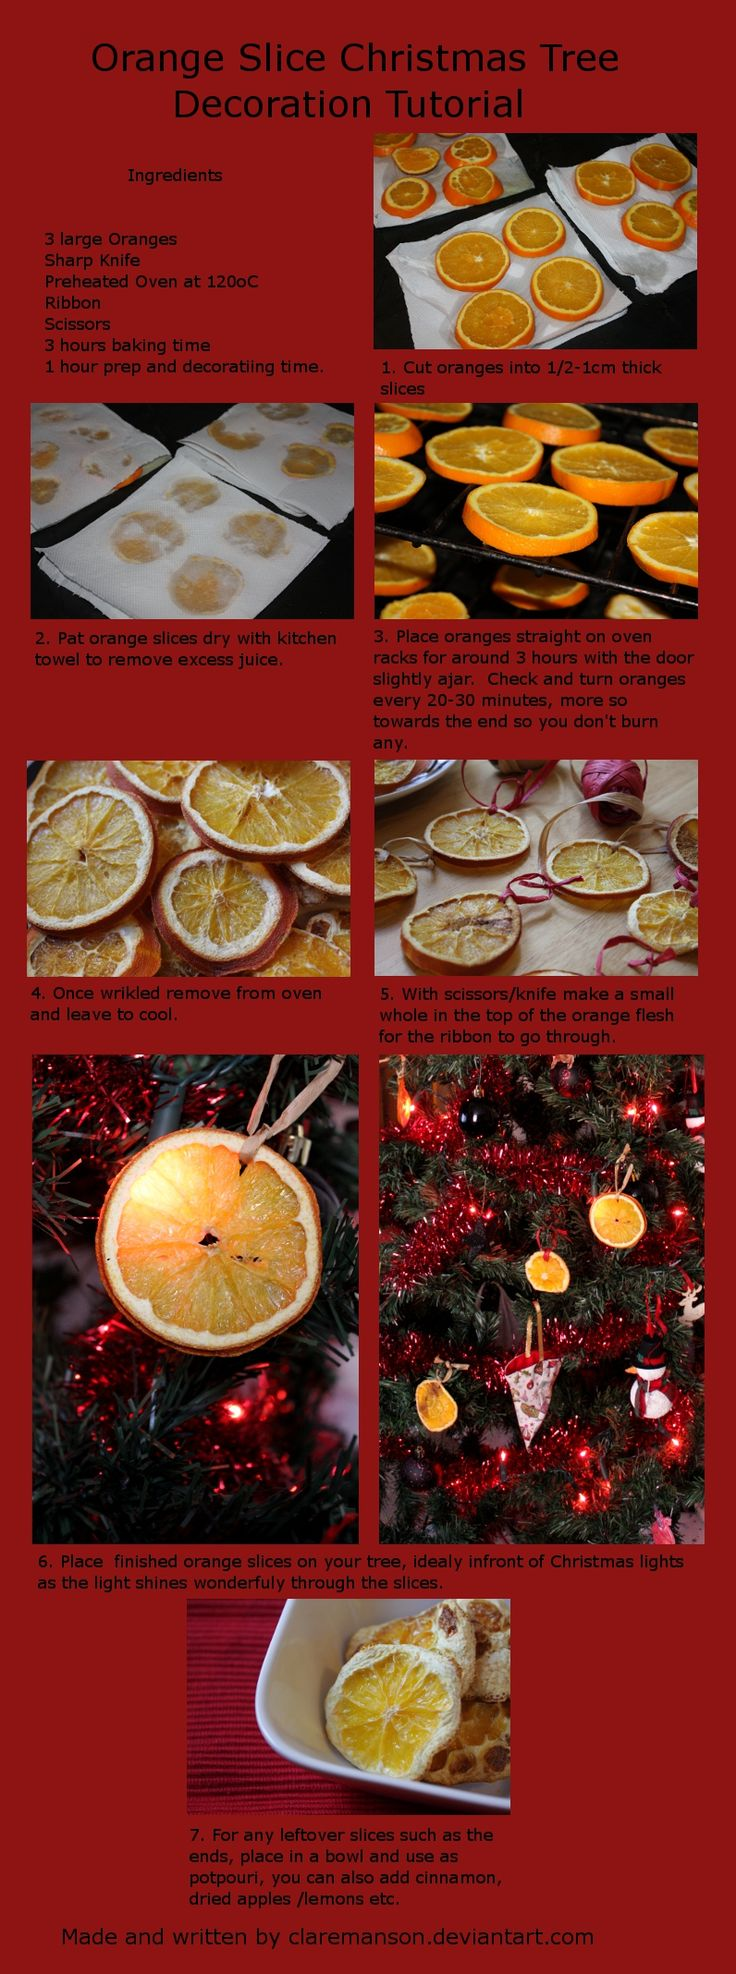 Orange Slice Christmas Tree Decoration Tutorial by claremanson.deviantart.com